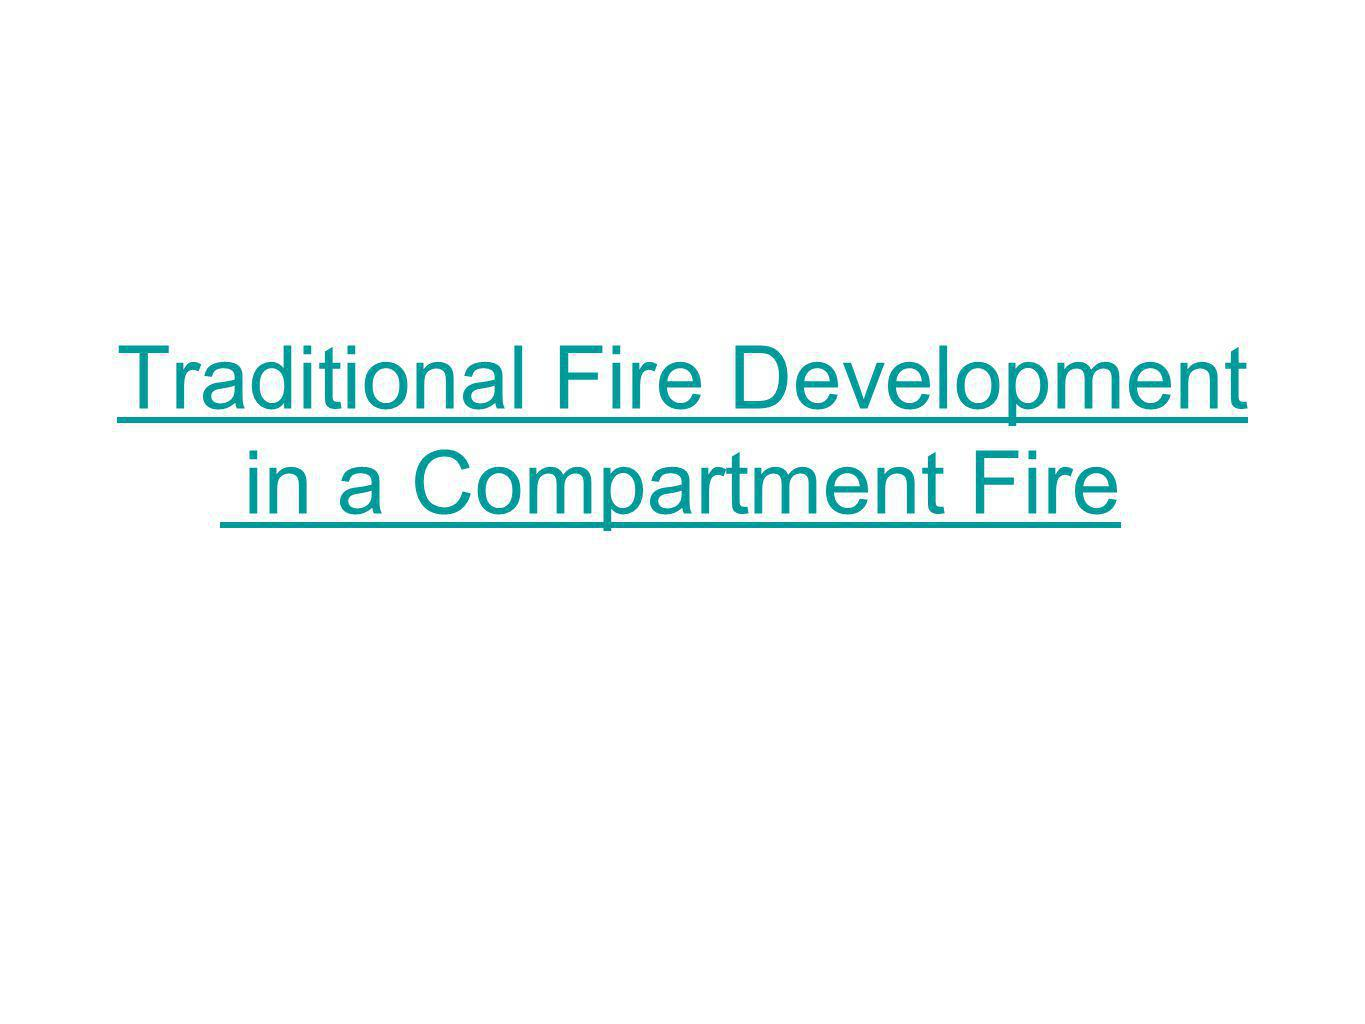 Traditional Fire Development in a Compartment FireTraditional Fire Development in a Compartment Fire